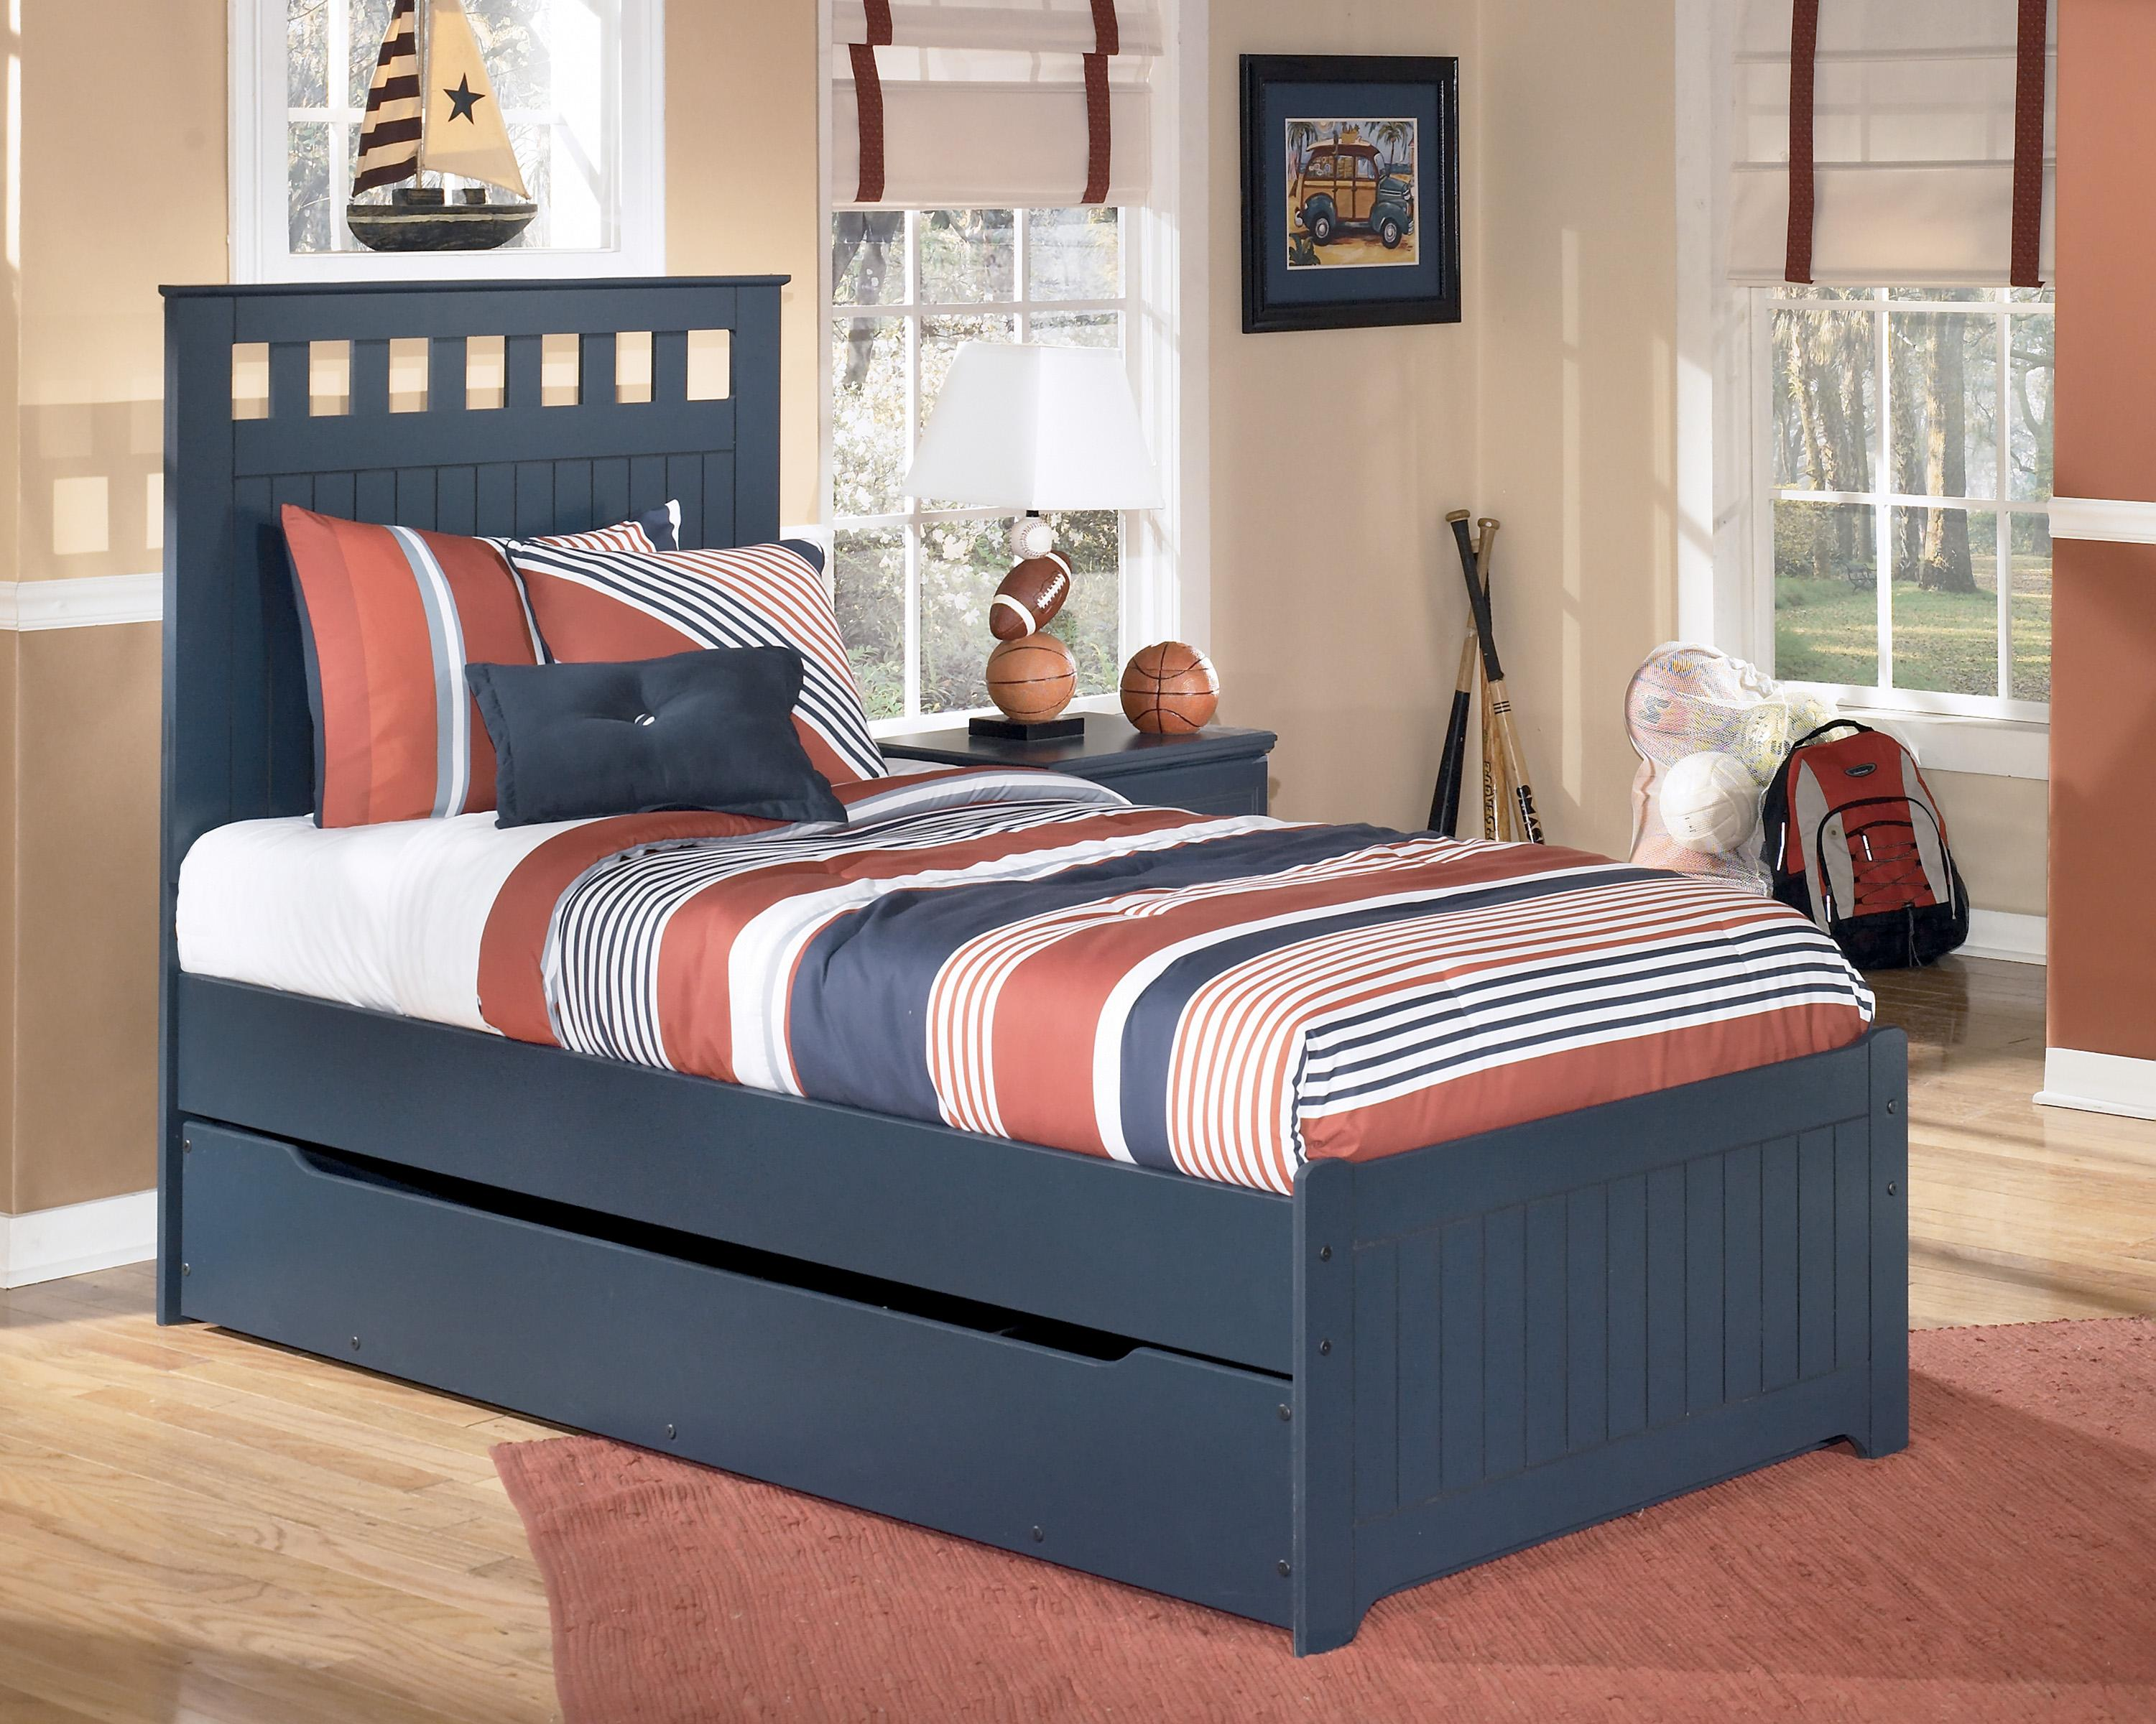 Signature Design by Ashley Leo Twin Bed with Storage/Trundle - Item Number: B103-52+51+60+82